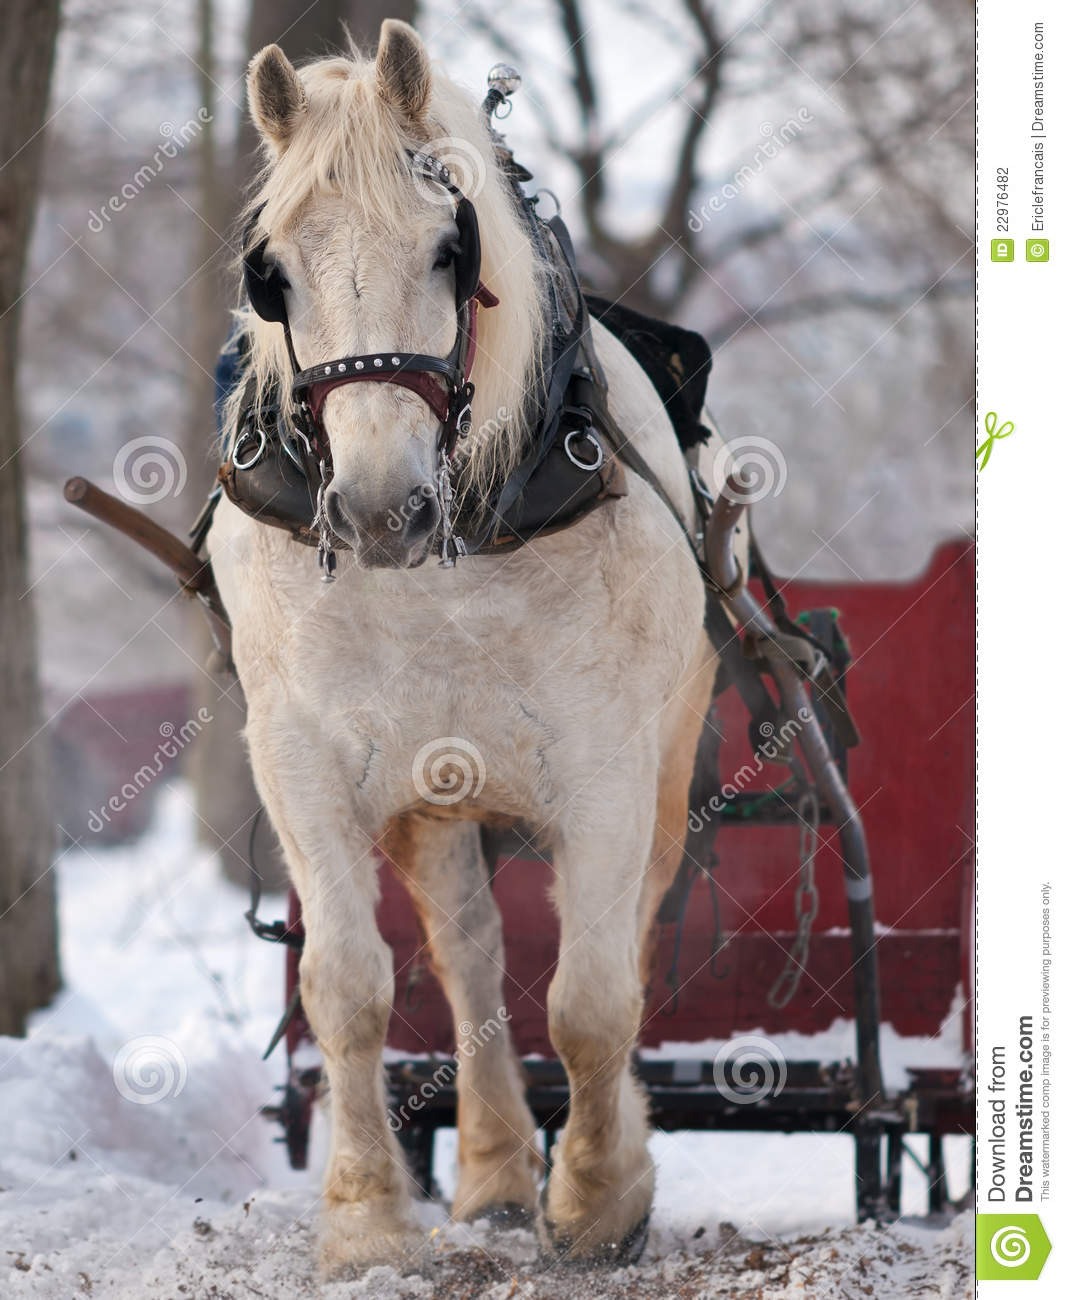 Good   Wallpaper Horse Winter - horse-pulling-sleigh-winter-22976482  Snapshot_545458.jpg